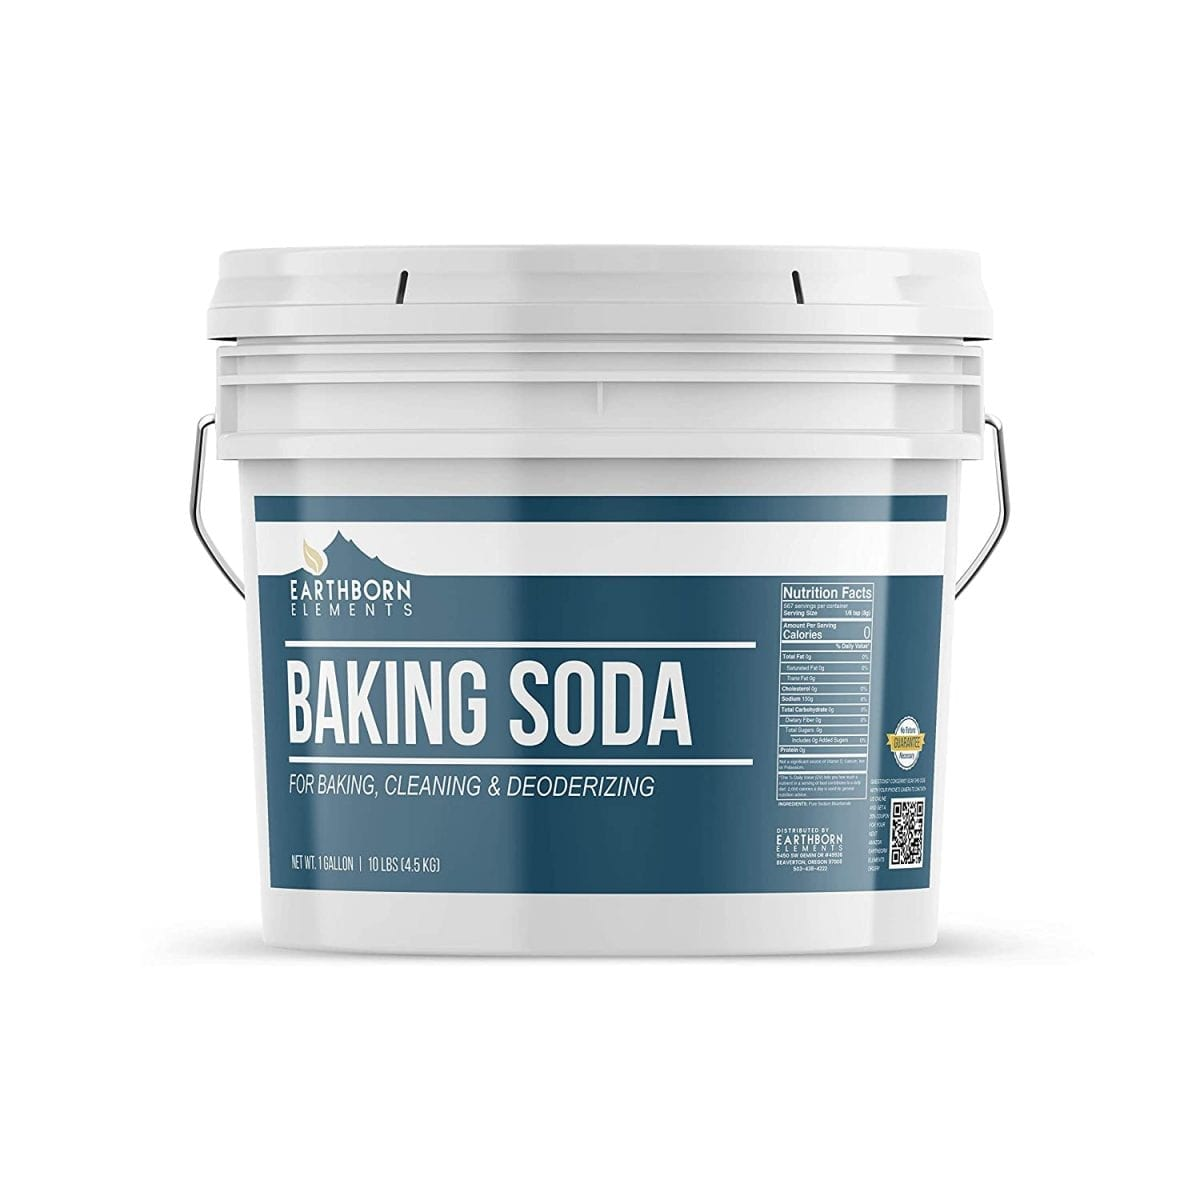 Earthborn Elements Baking Soda